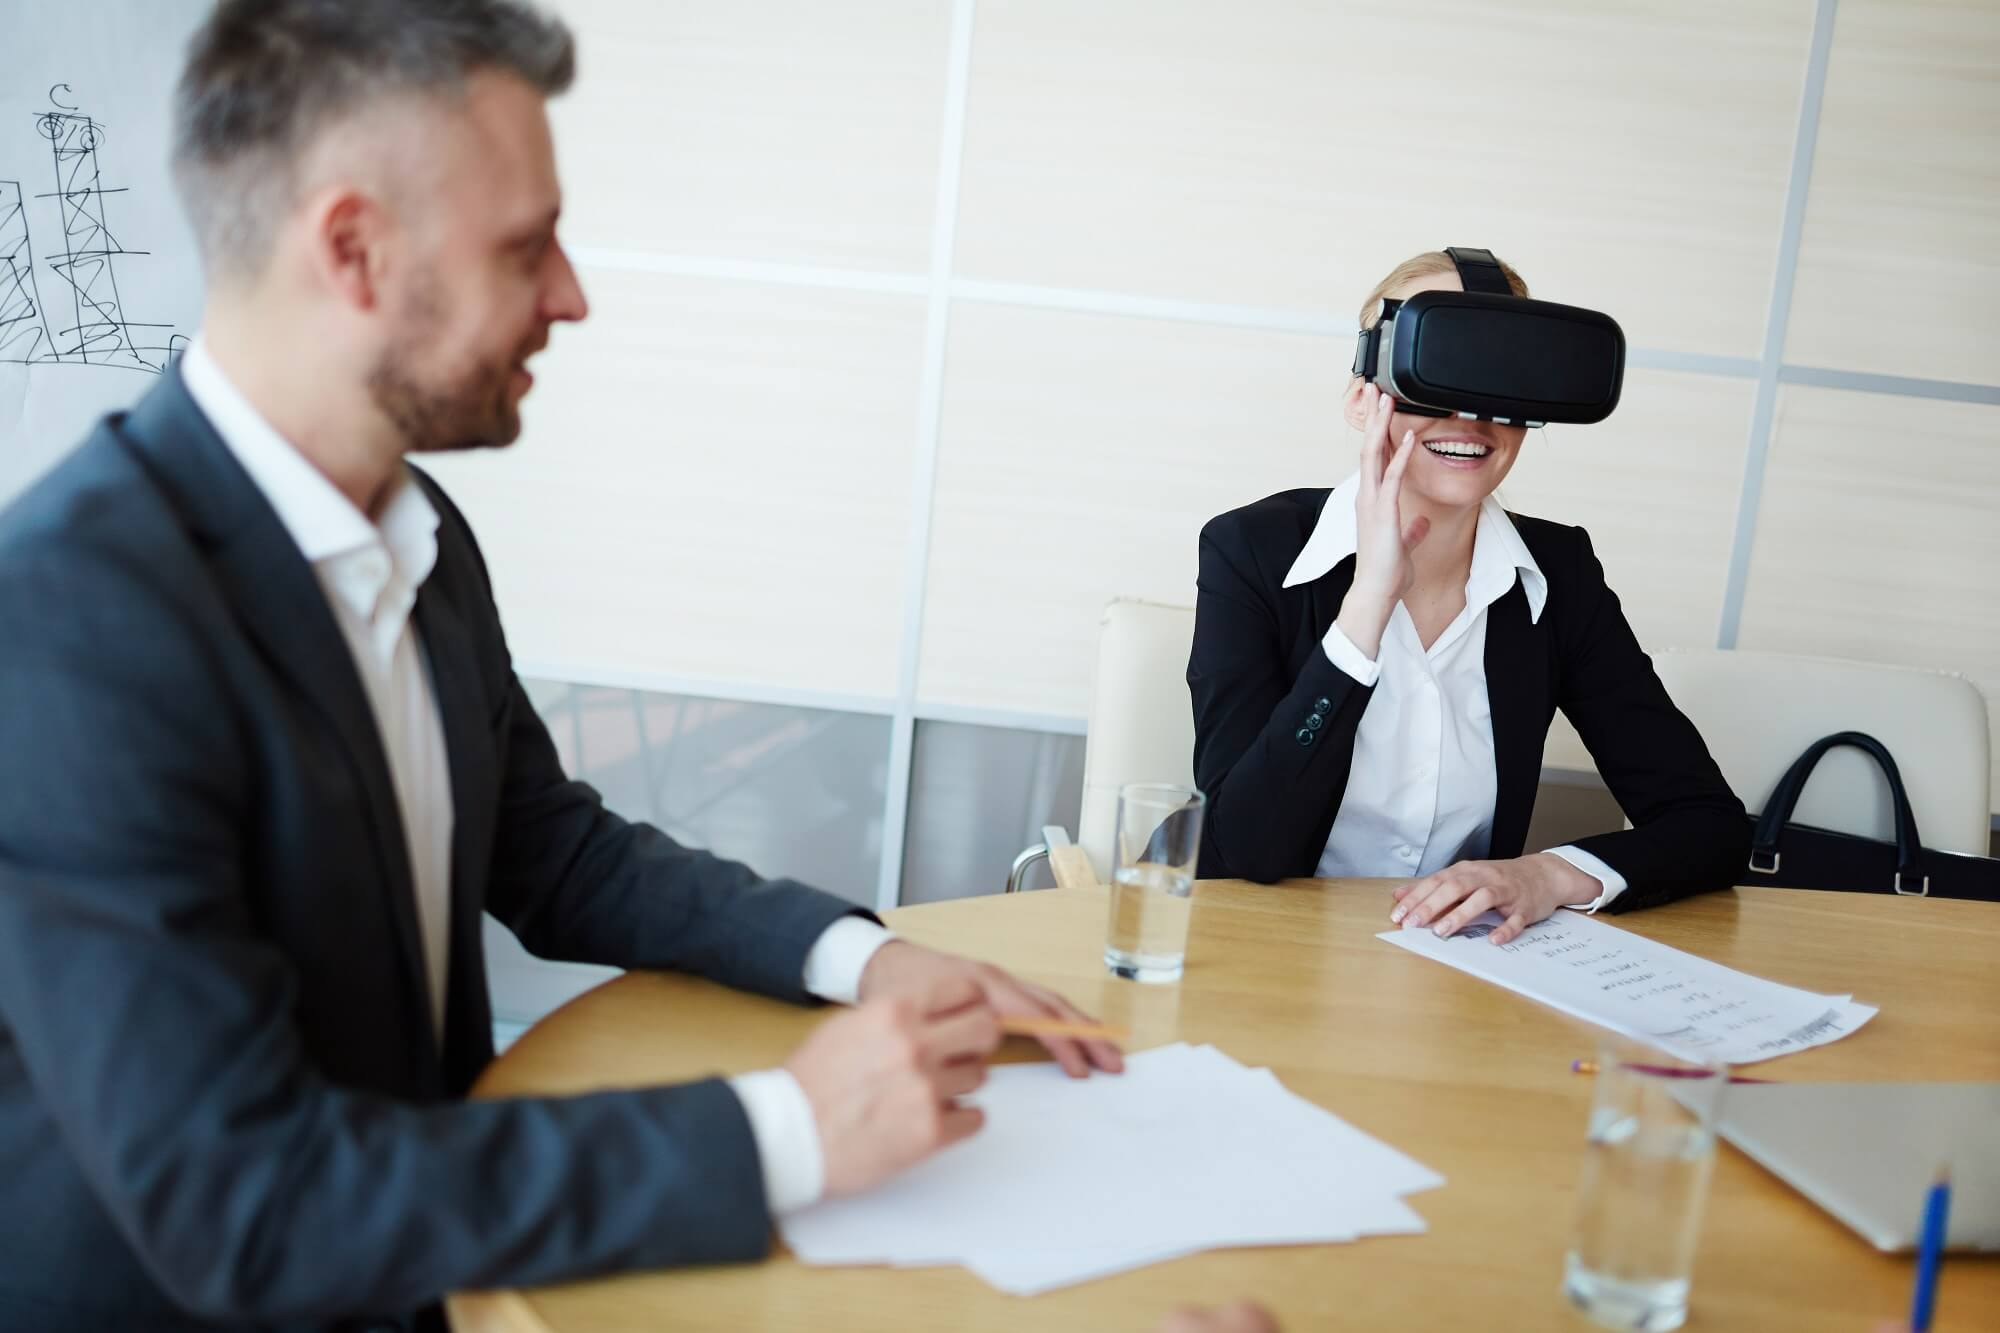 female client looking through corporate event with vr headset and doing virtual event planning